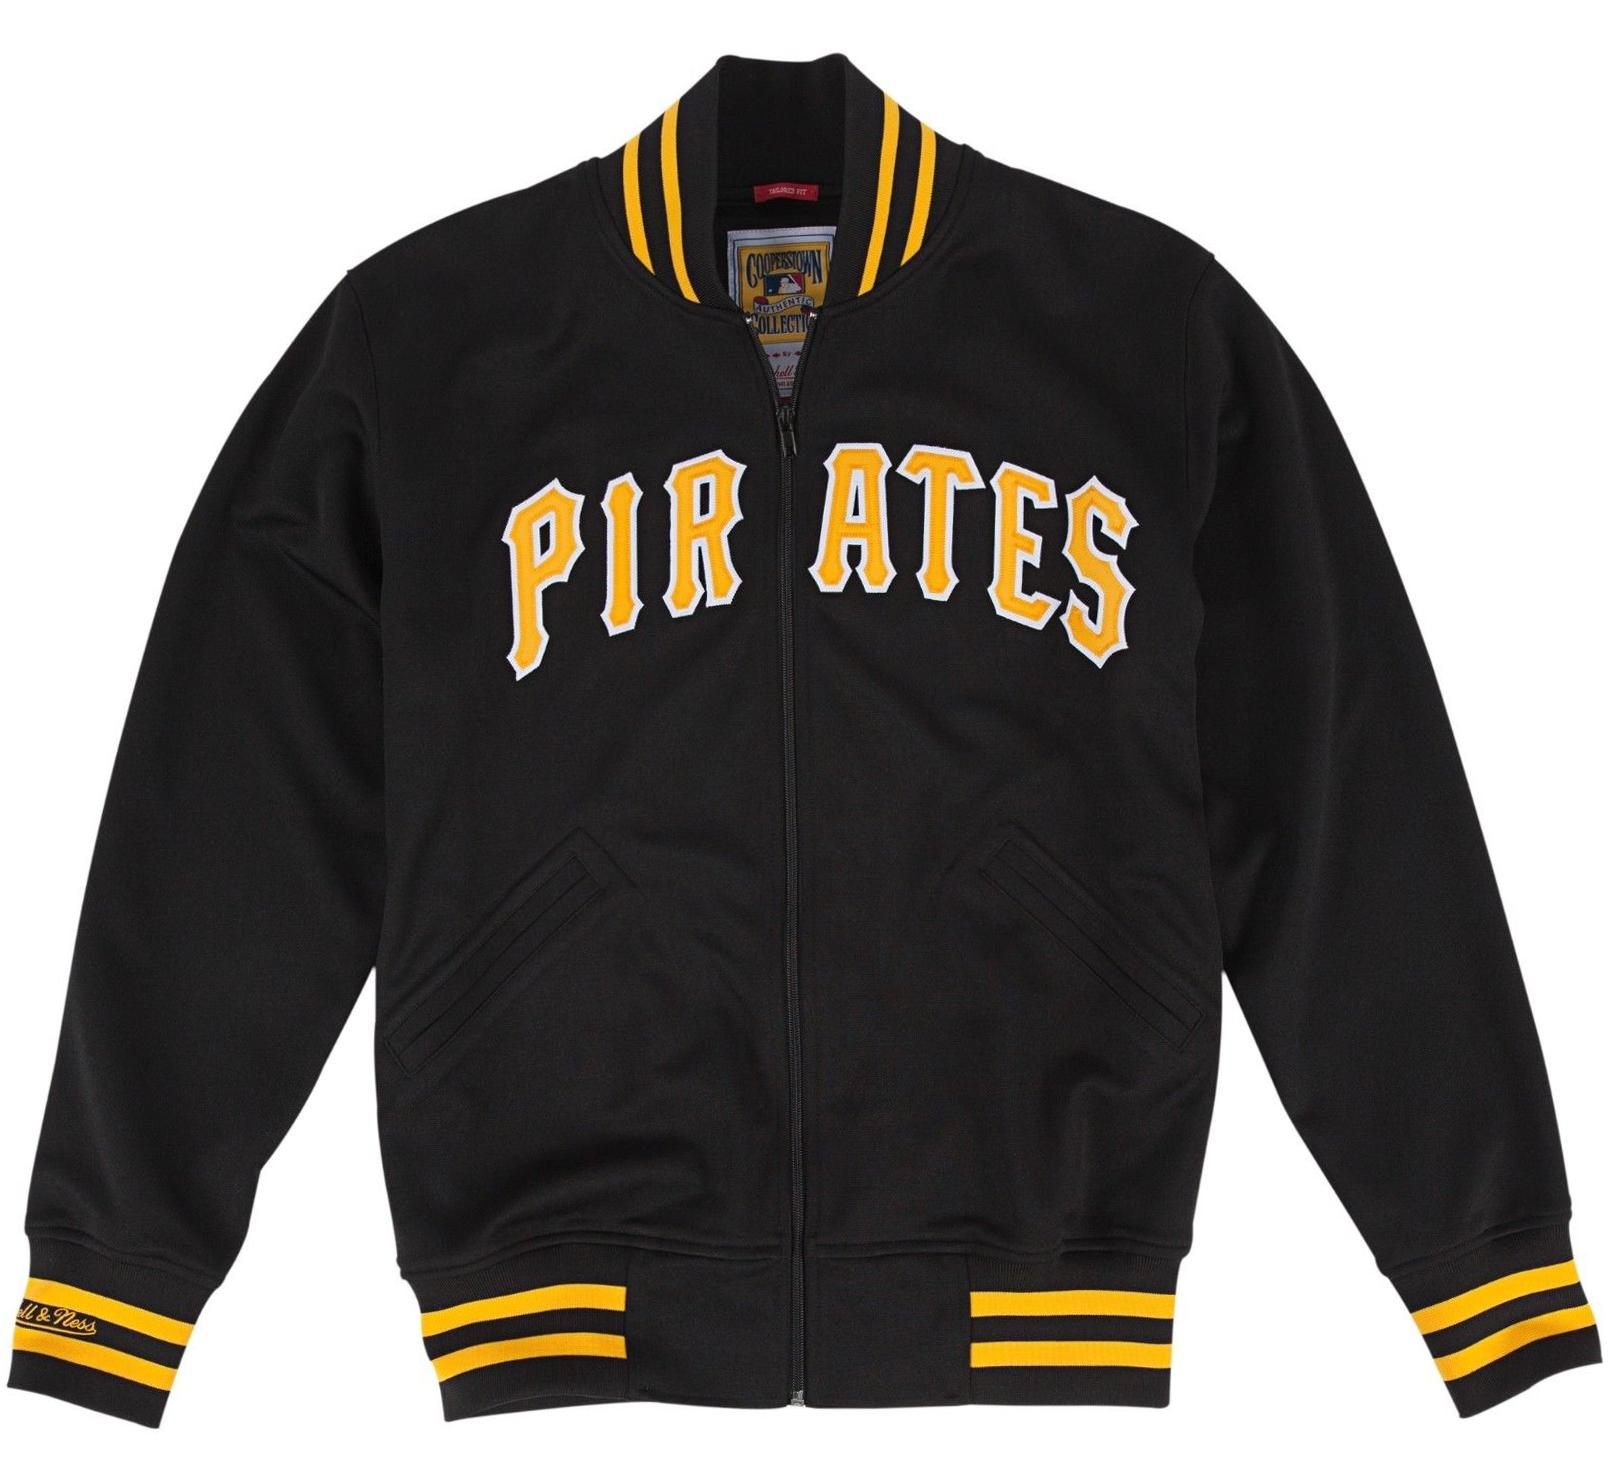 Pirates Authentic BP Jacket